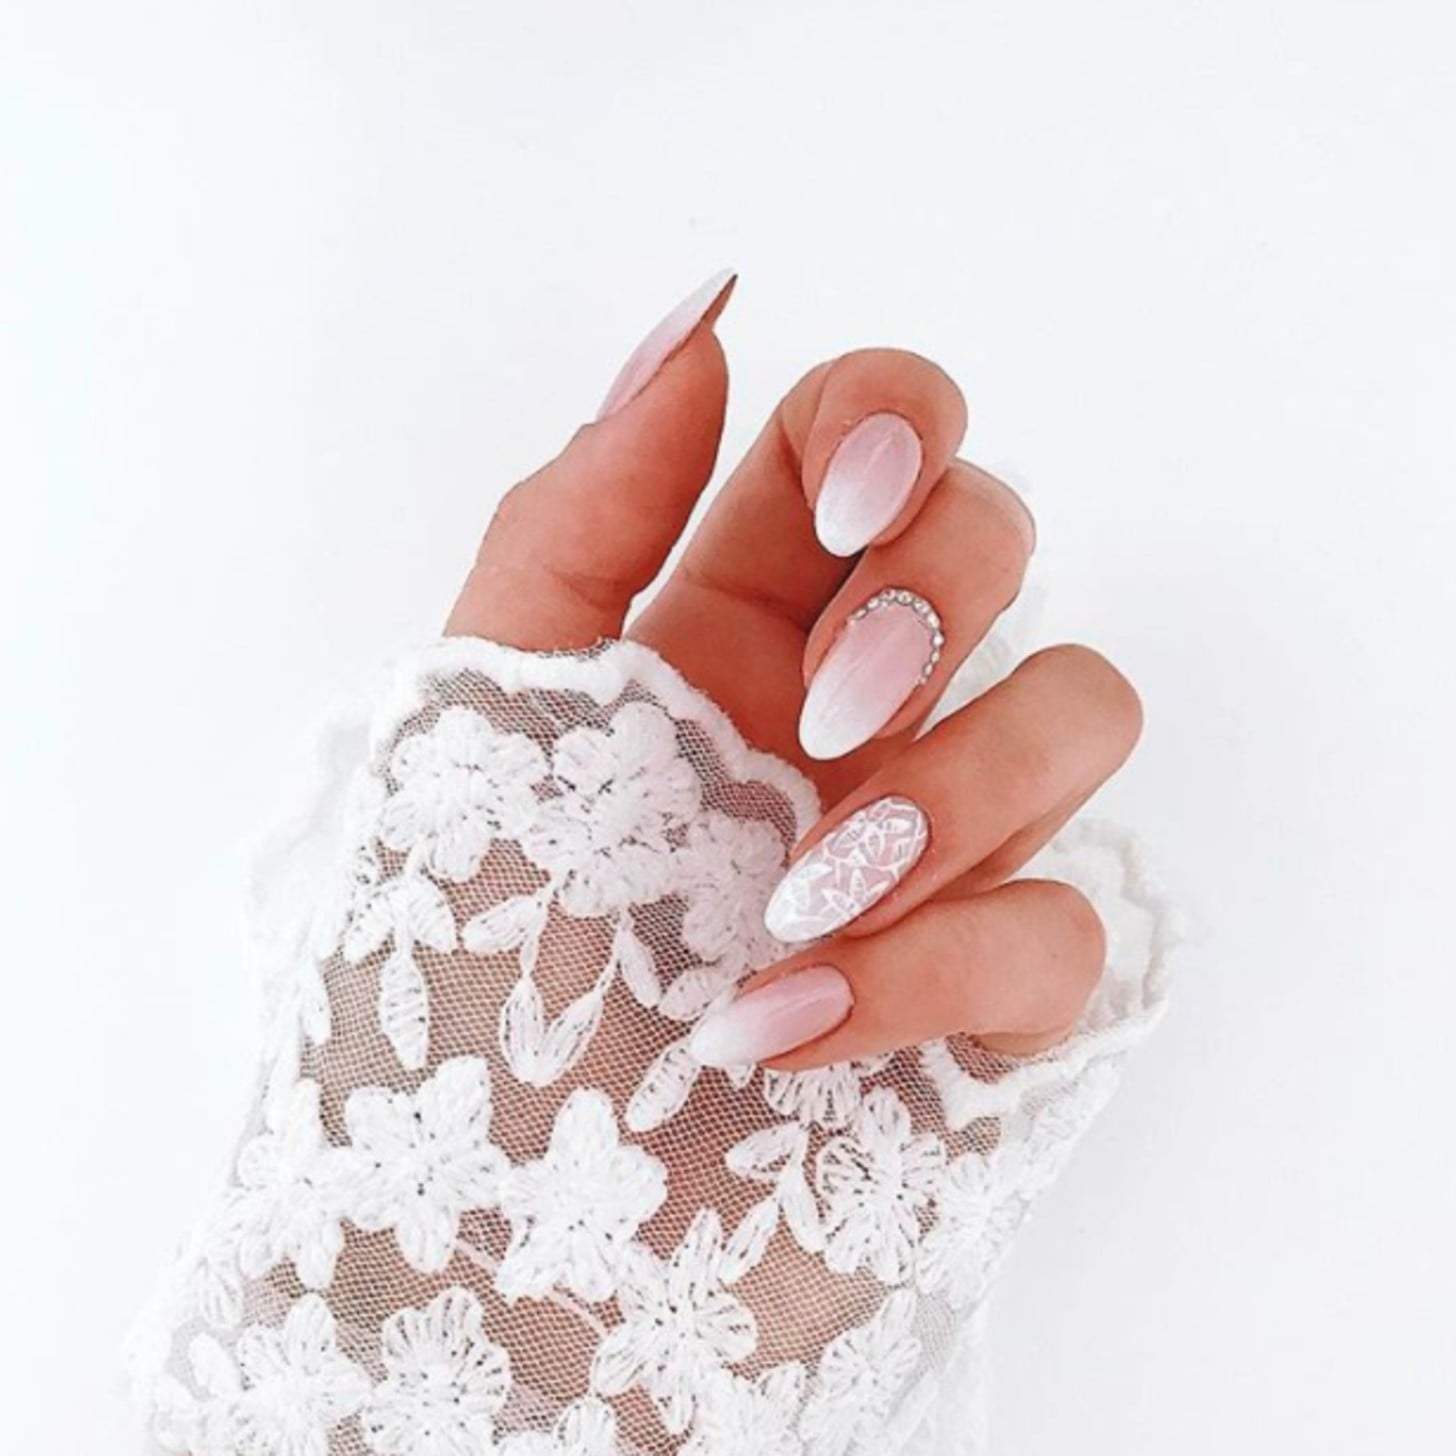 Lace Nails Inspiration | POPSUGAR Beauty UK